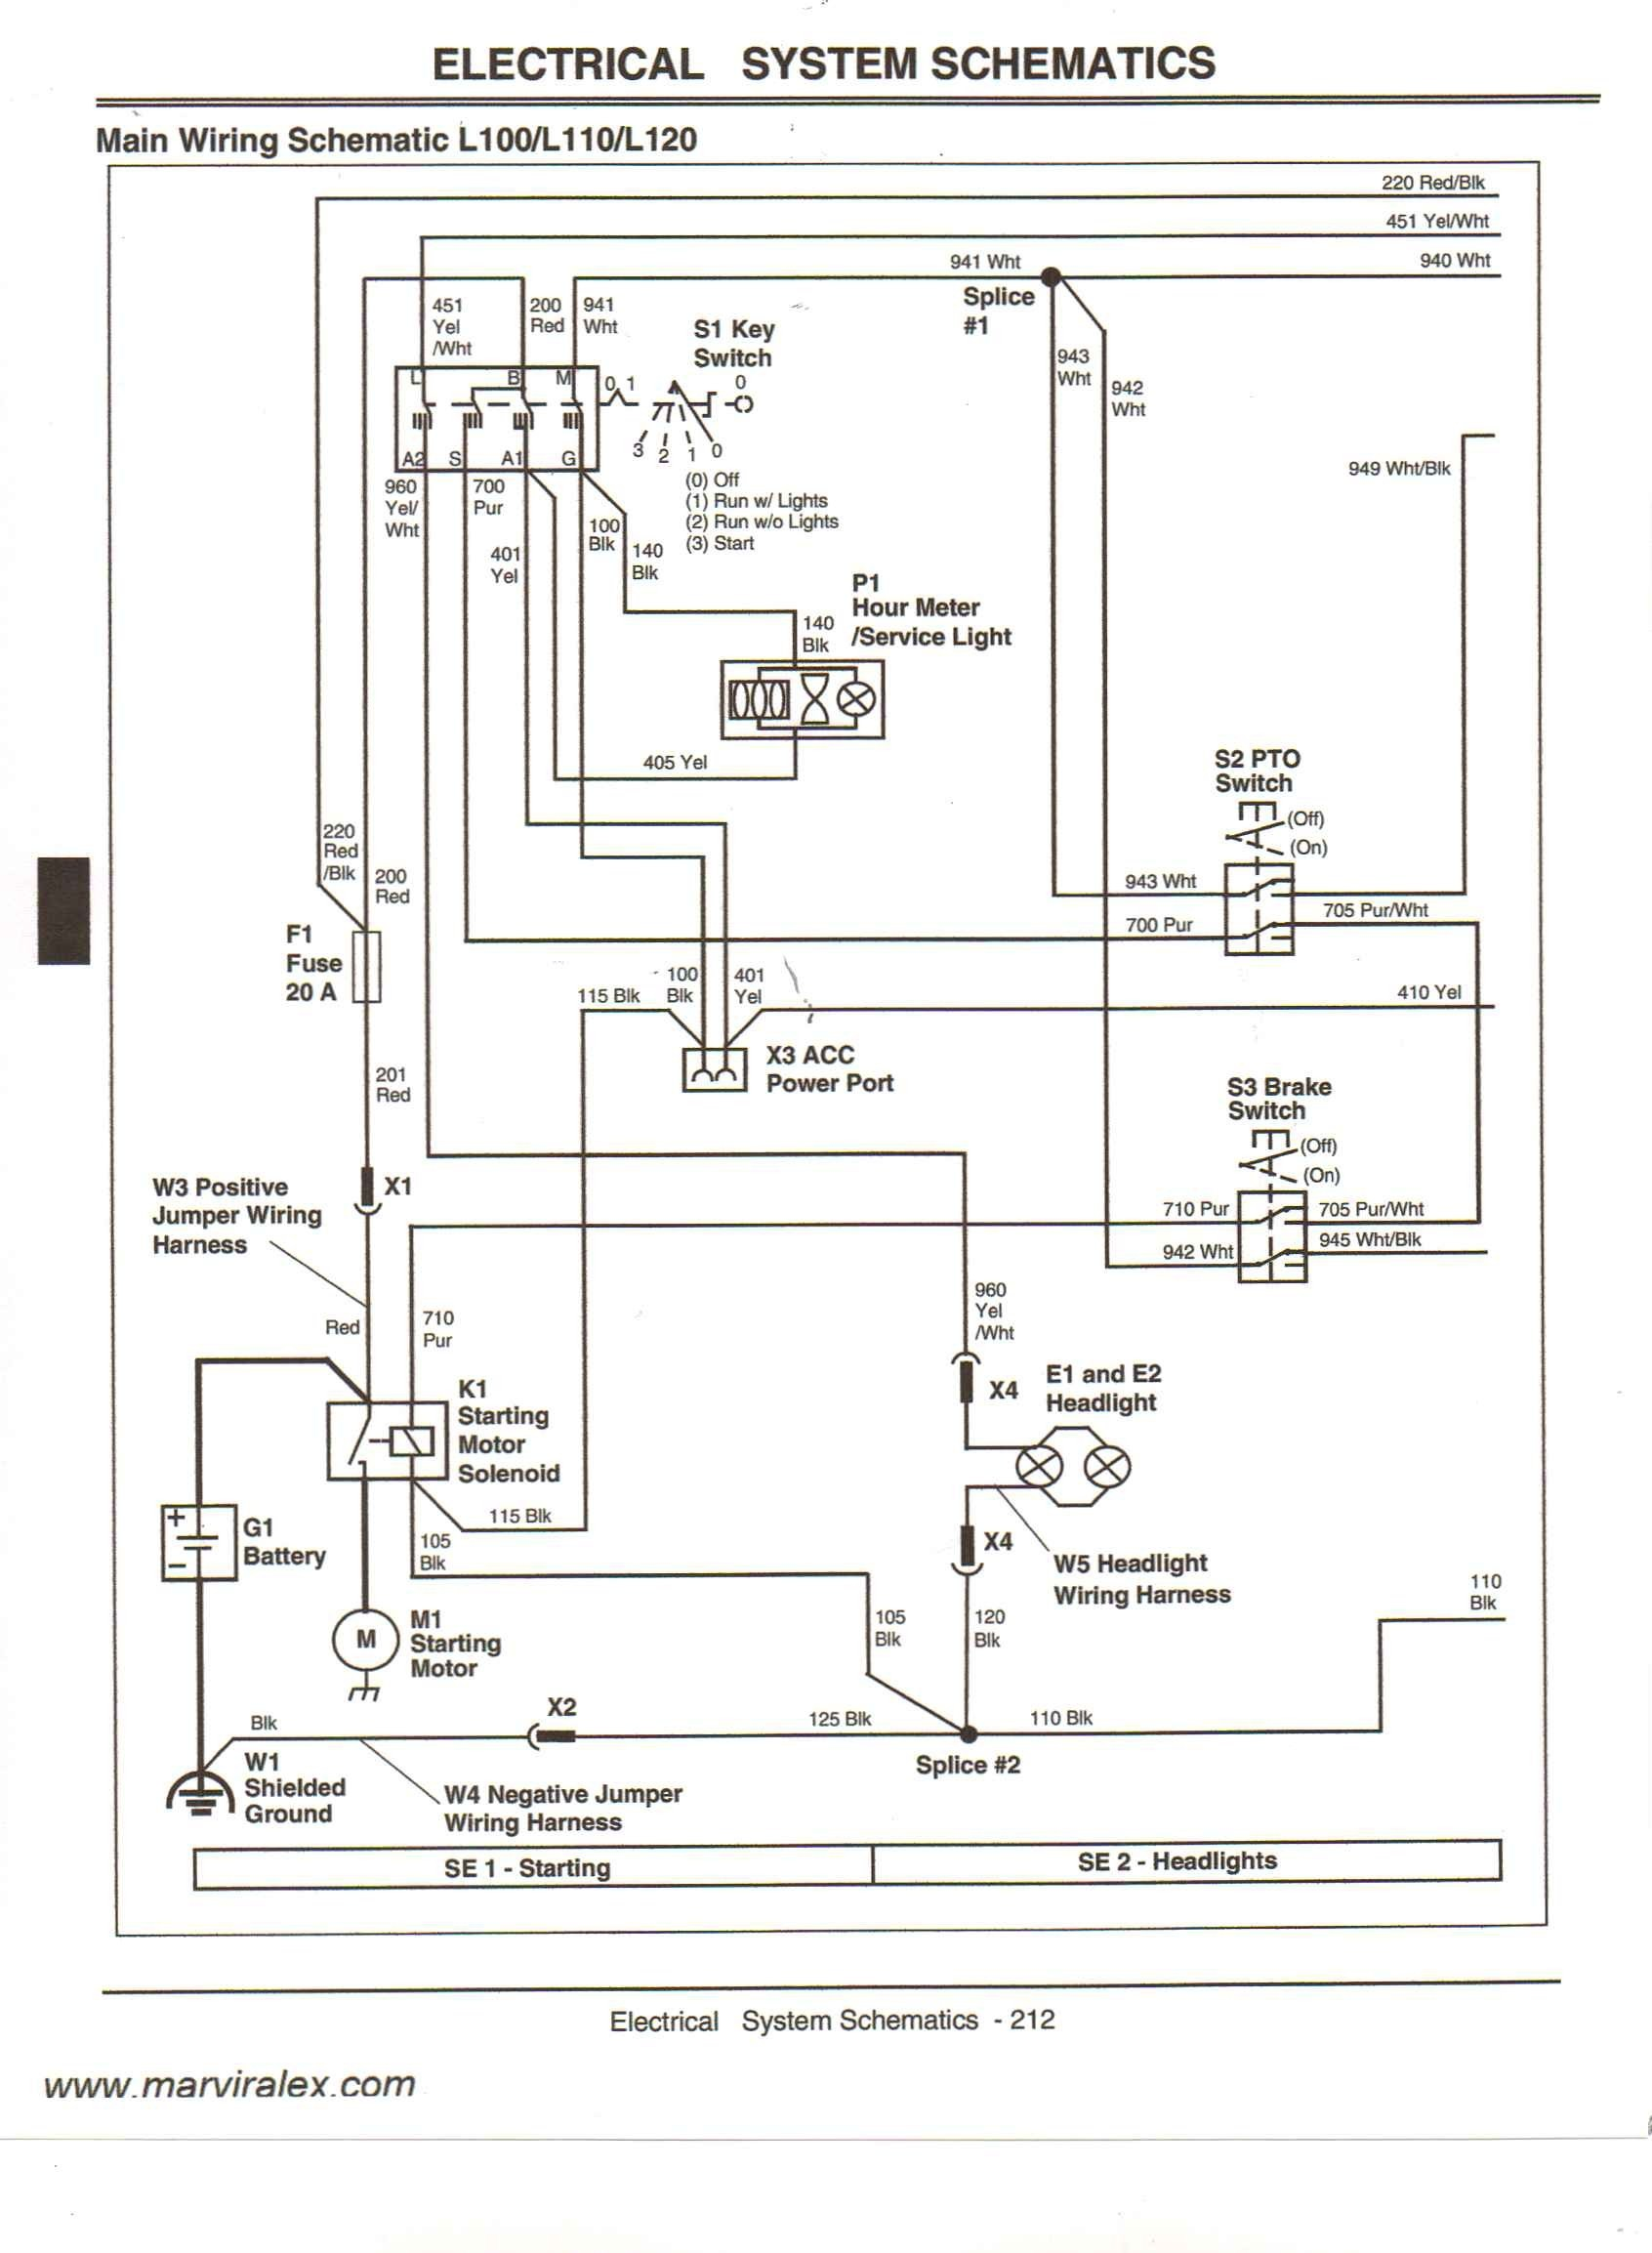 Jd Gator 4×2 Wiring Diagram Xuv 620i Wiring Diagram Wiring Diagram E10 Of Jd Gator 4×2 Wiring Diagram